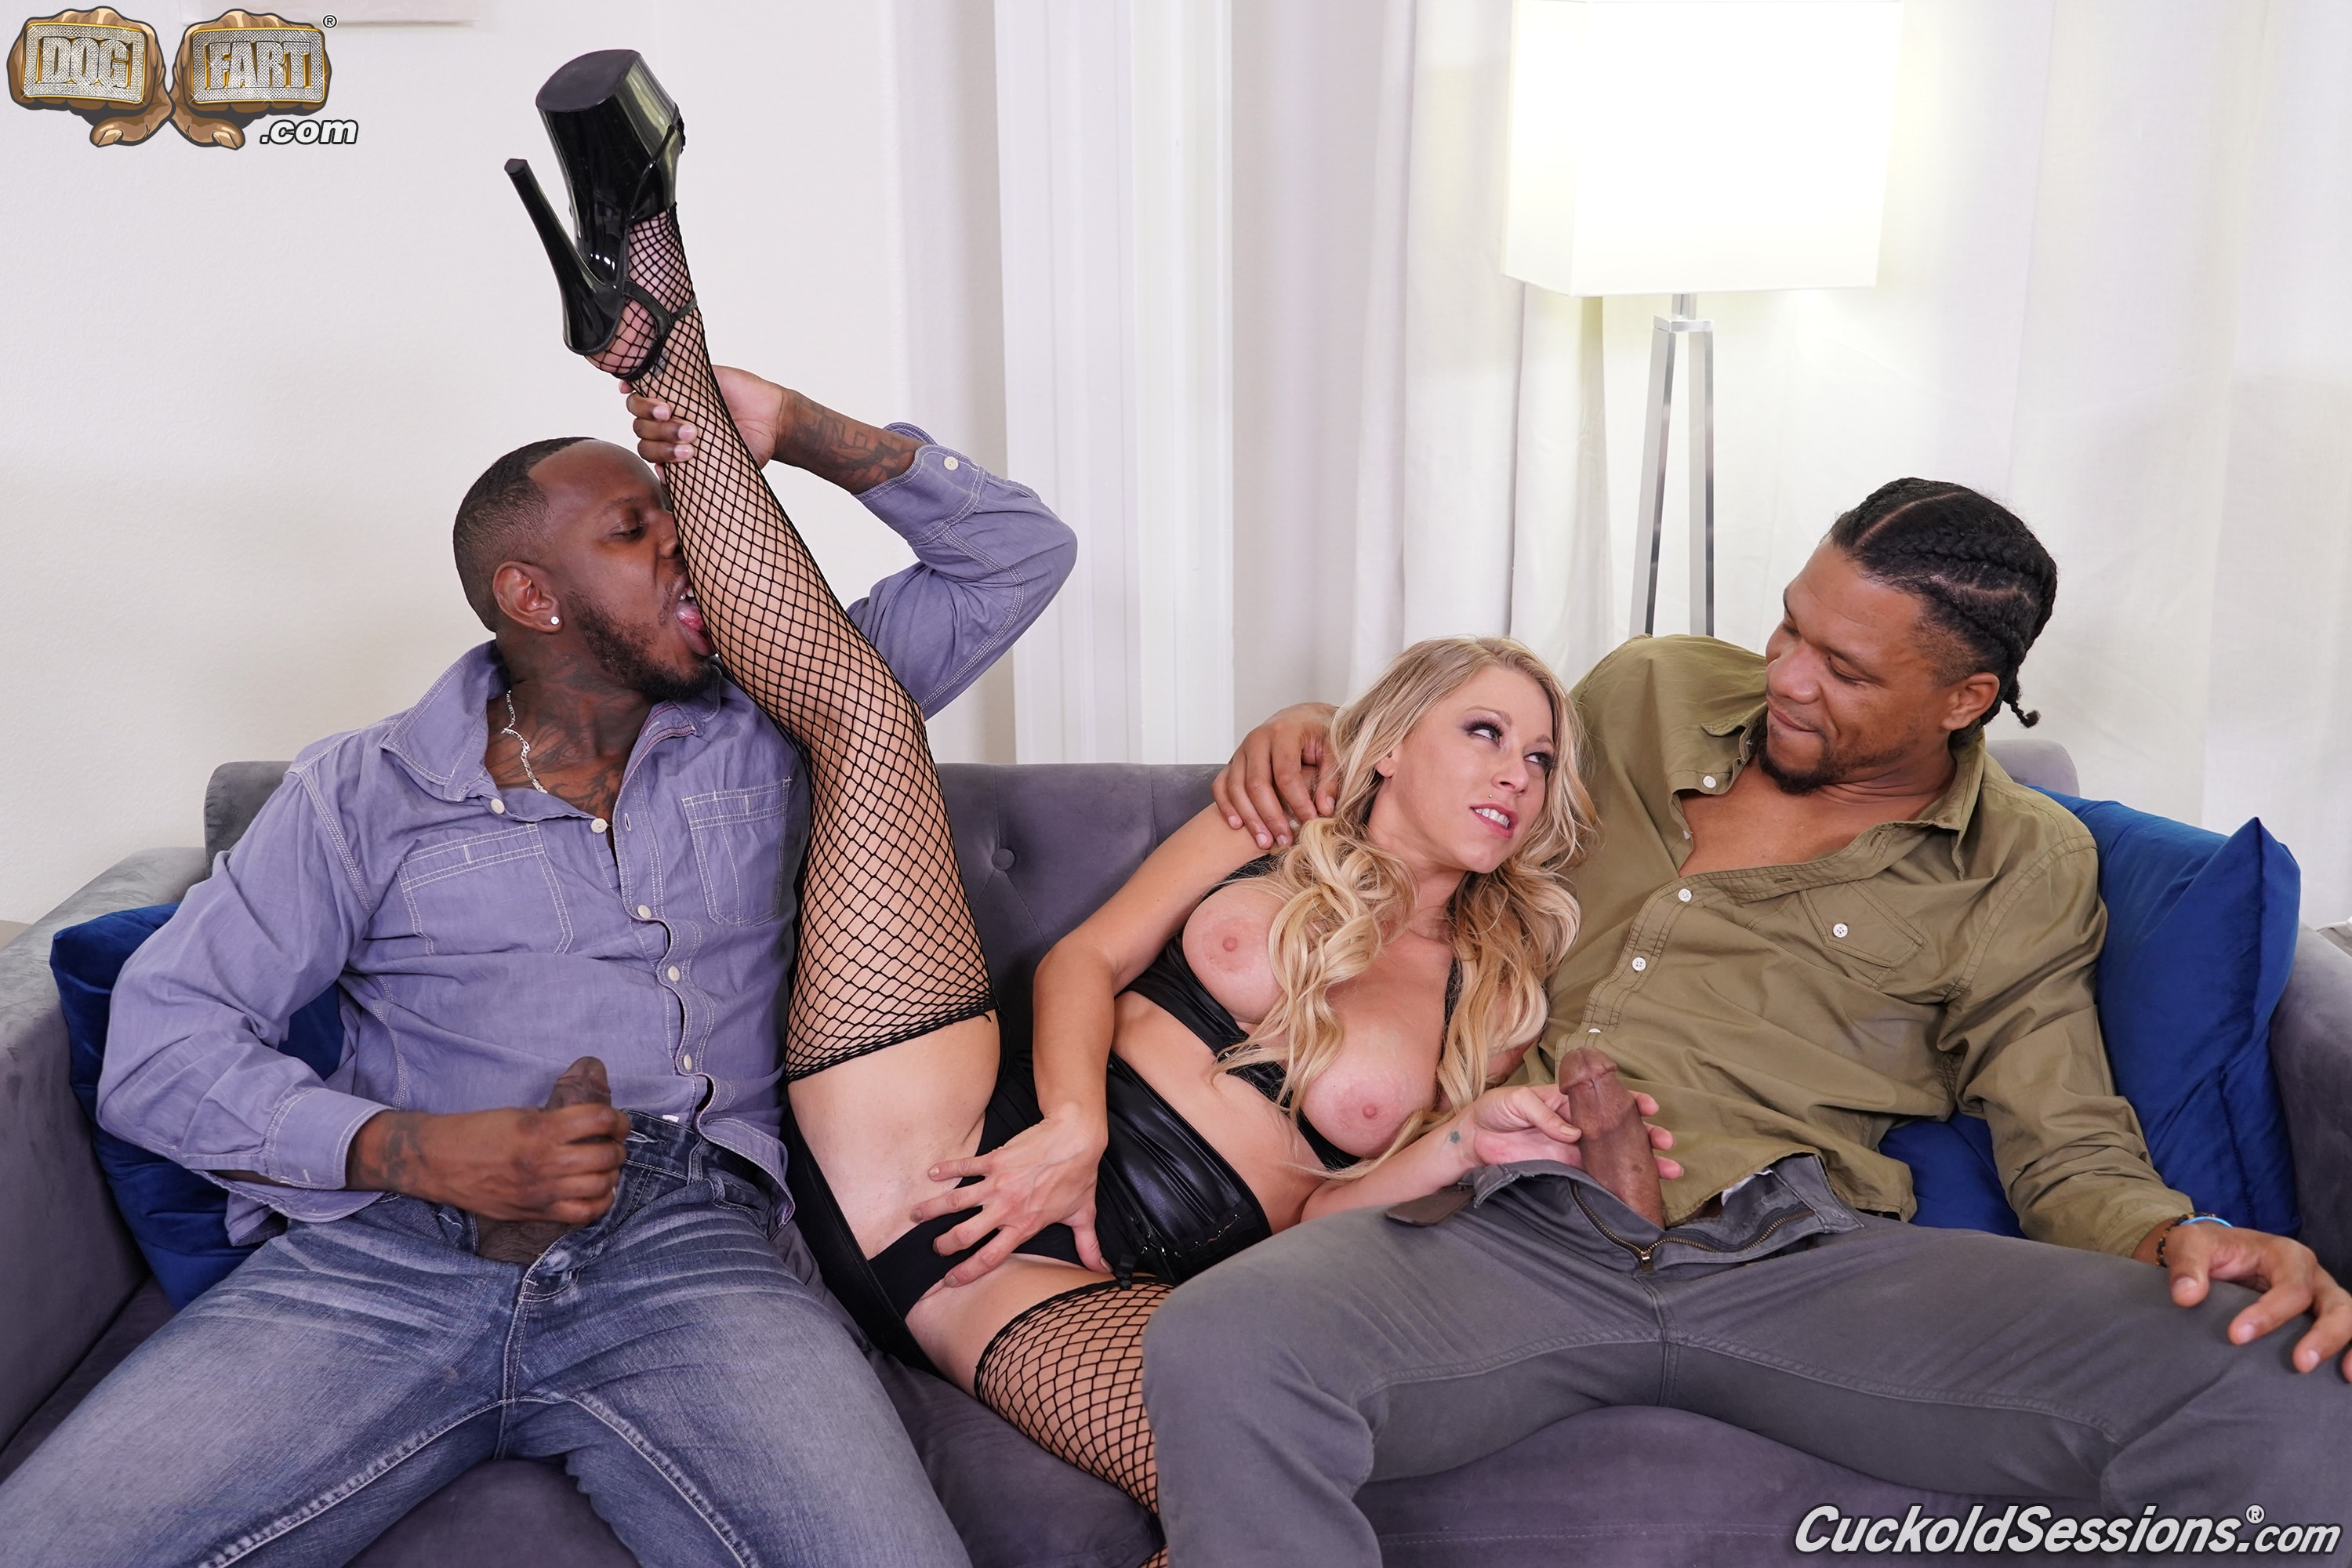 Dogfart '- Cuckold Sessions - Scene 2' starring Katie Morgan (Photo 15)